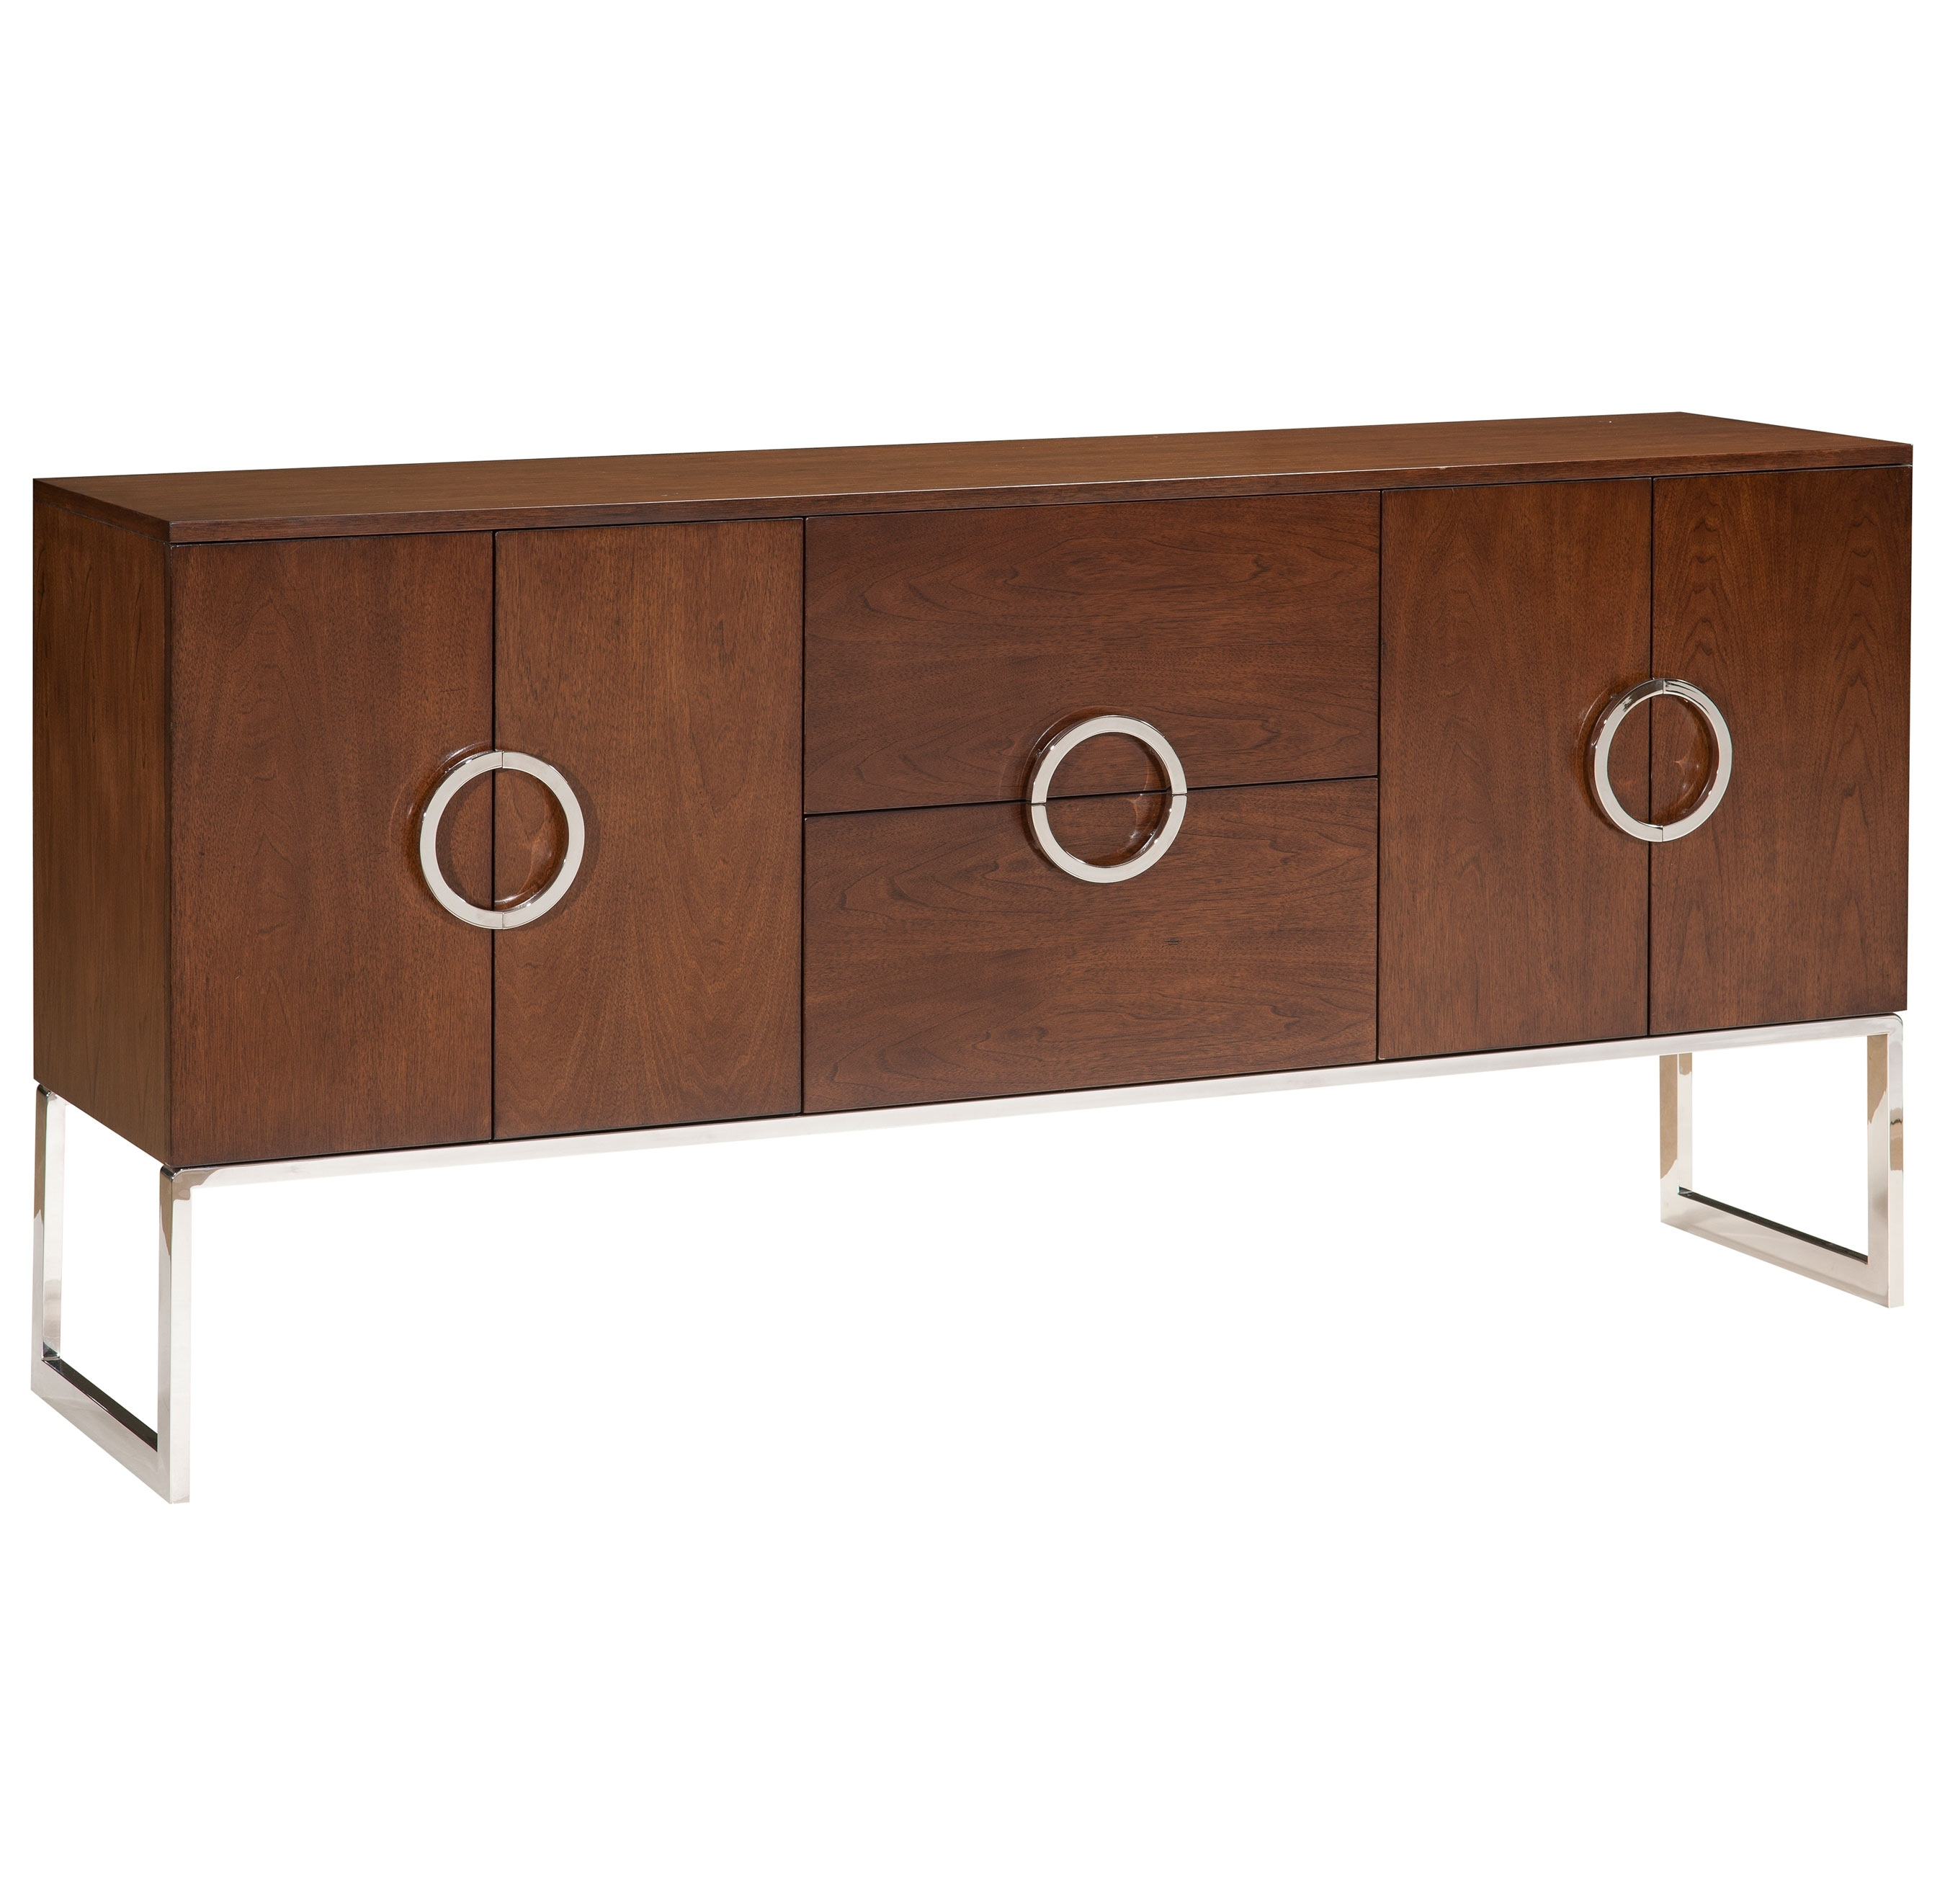 Buffets & Sideboards | Kathy Kuo Home Pertaining To Recent Antique Walnut Finish 2 Door/4 Drawer Sideboards (#4 of 20)